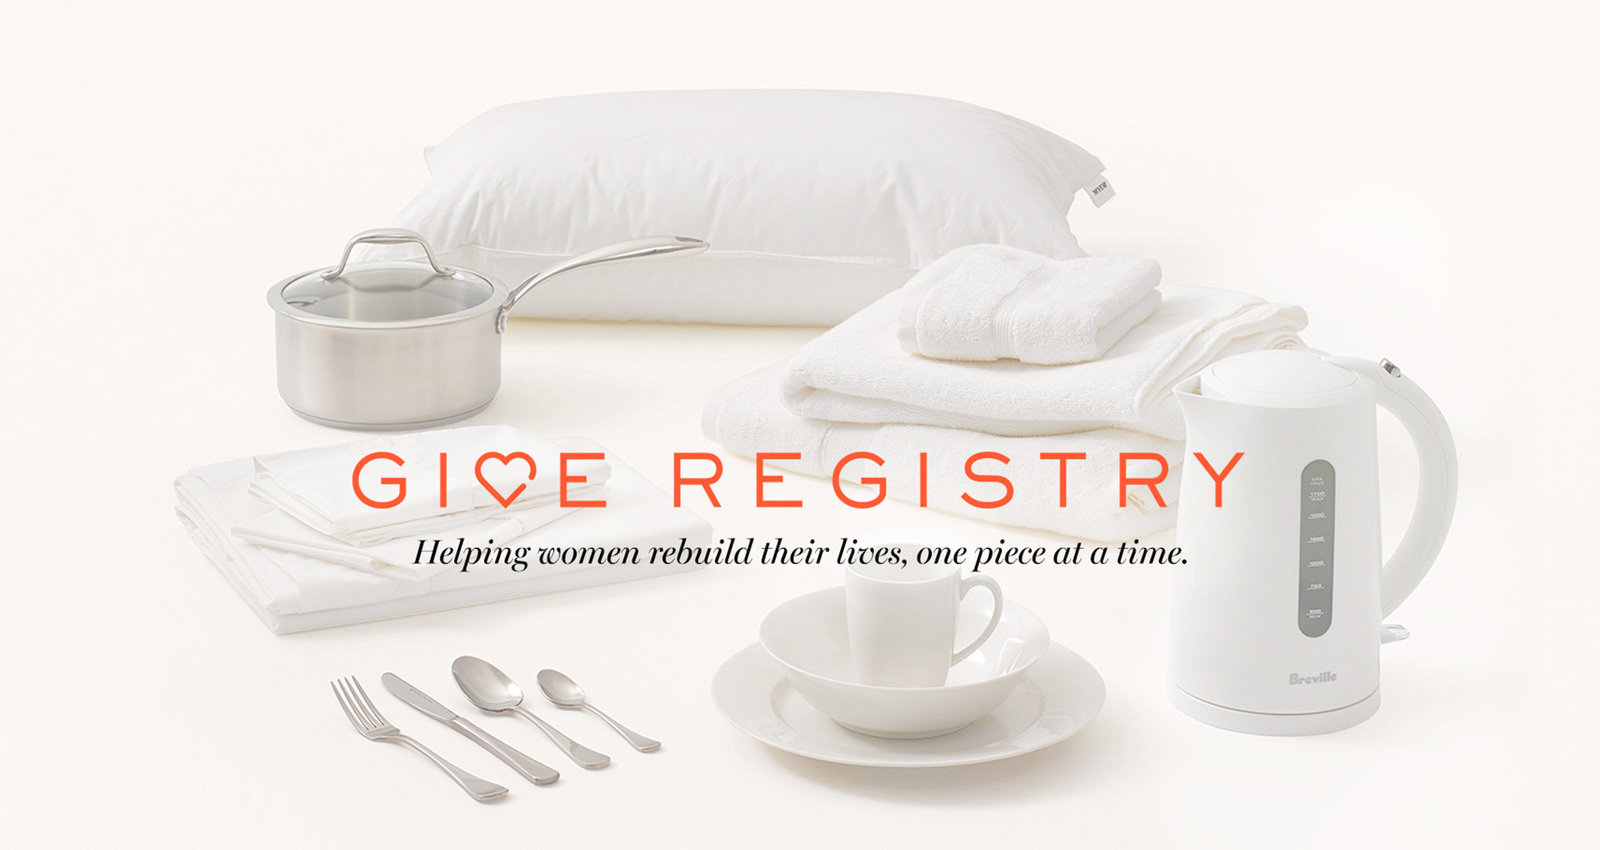 Give Registry